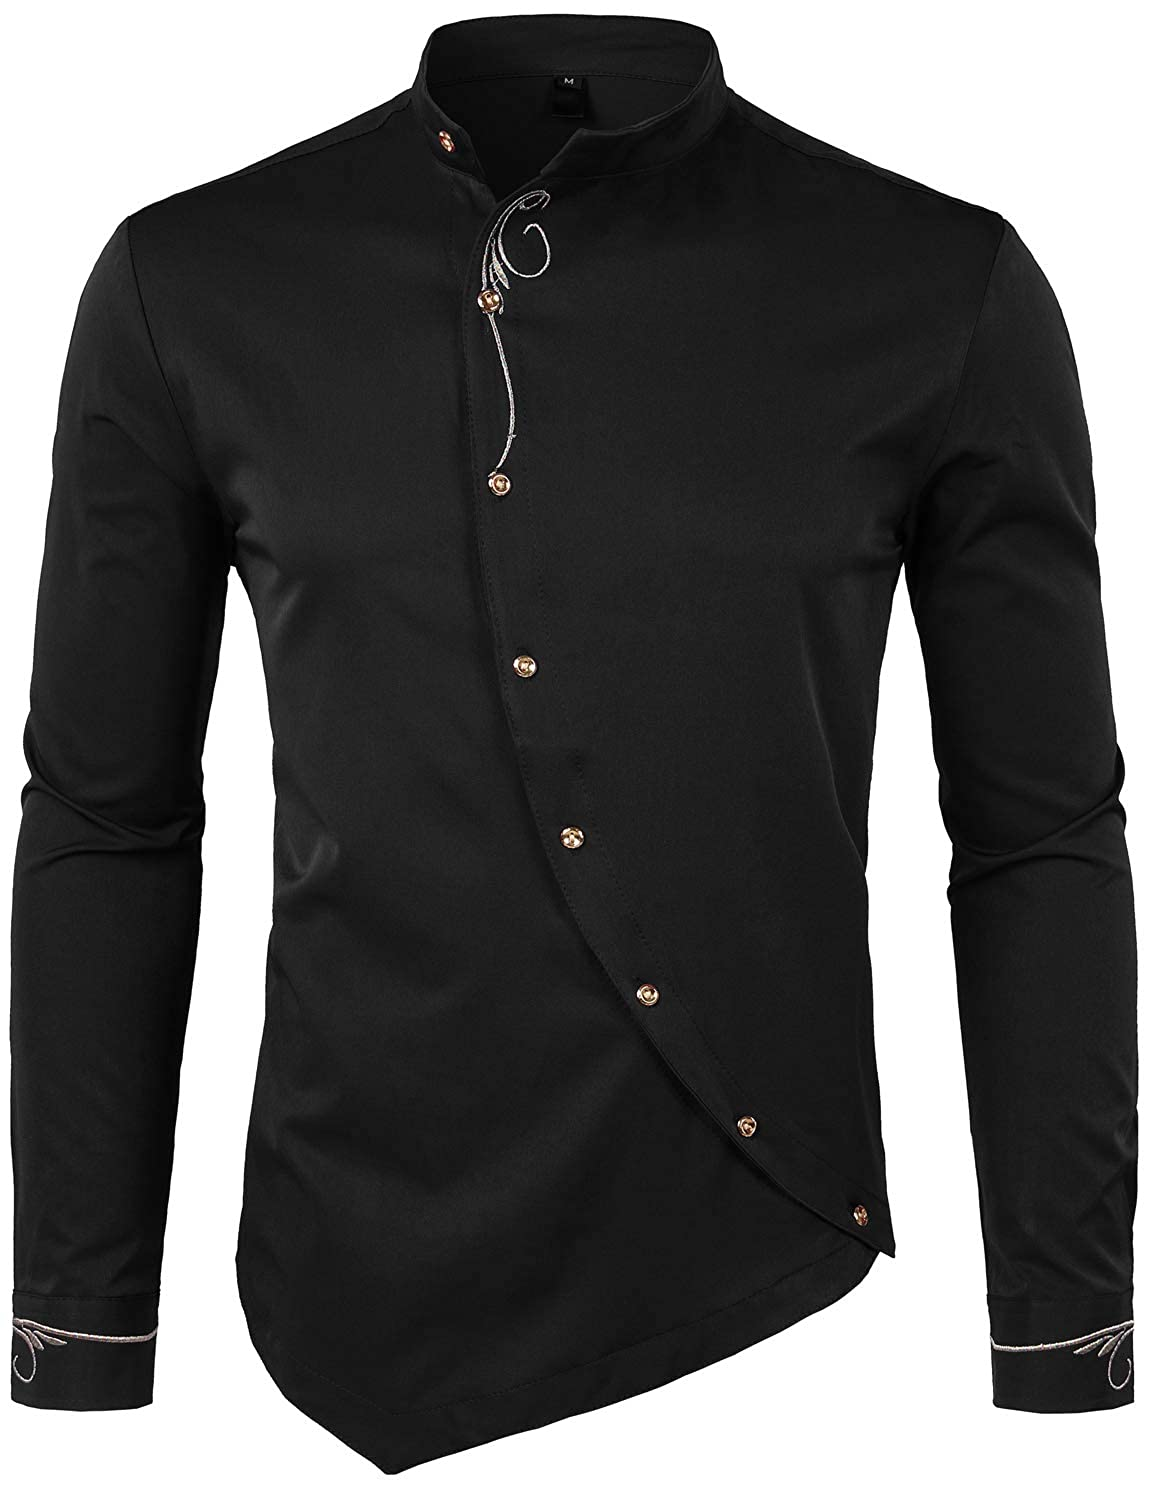 Steampunk Men's Shirts WHATLEES Mens Hipster Casual Slim Fit Long Sleeve Button Down Dress Shirts Tops with Embroidery $25.99 AT vintagedancer.com